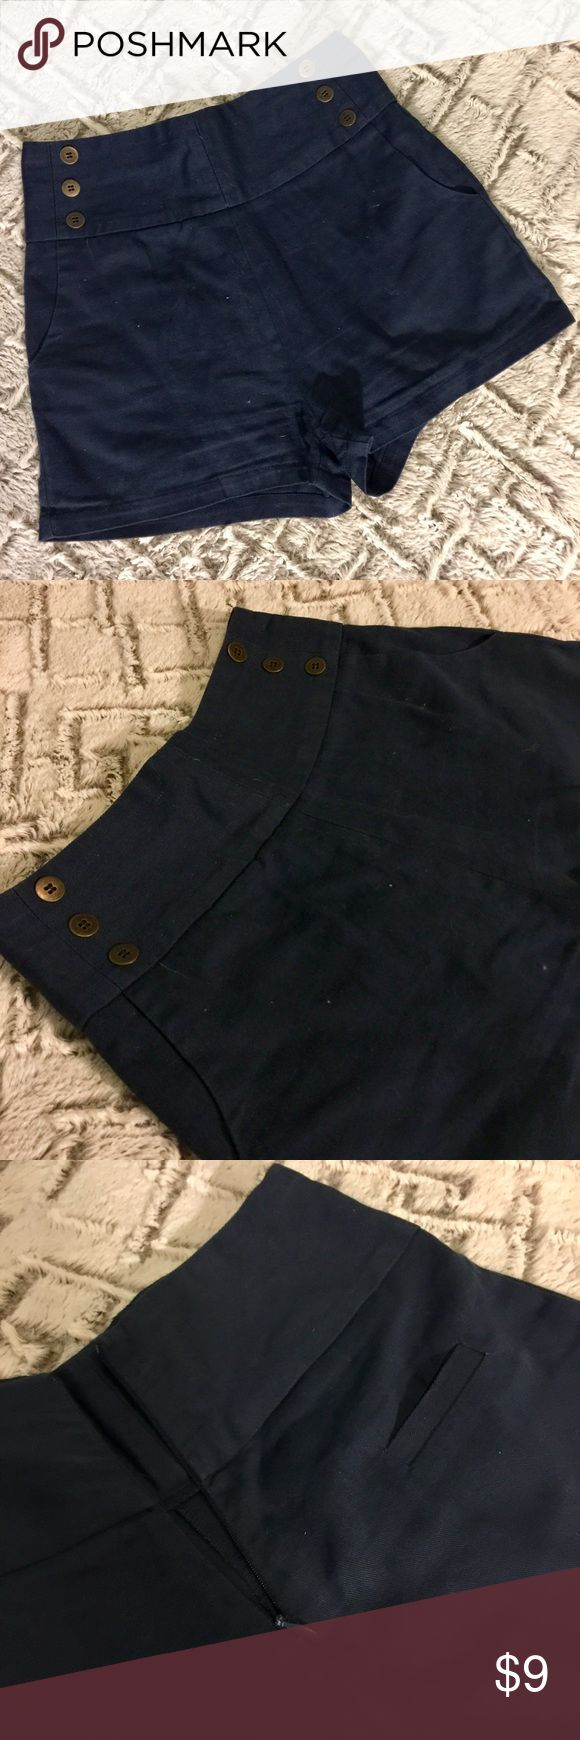 ⚓️ Nautical shorts Nautical style navy shorts. There's pockets and a small pocket in the back. Zipper in the back. Lucca Couture Shorts